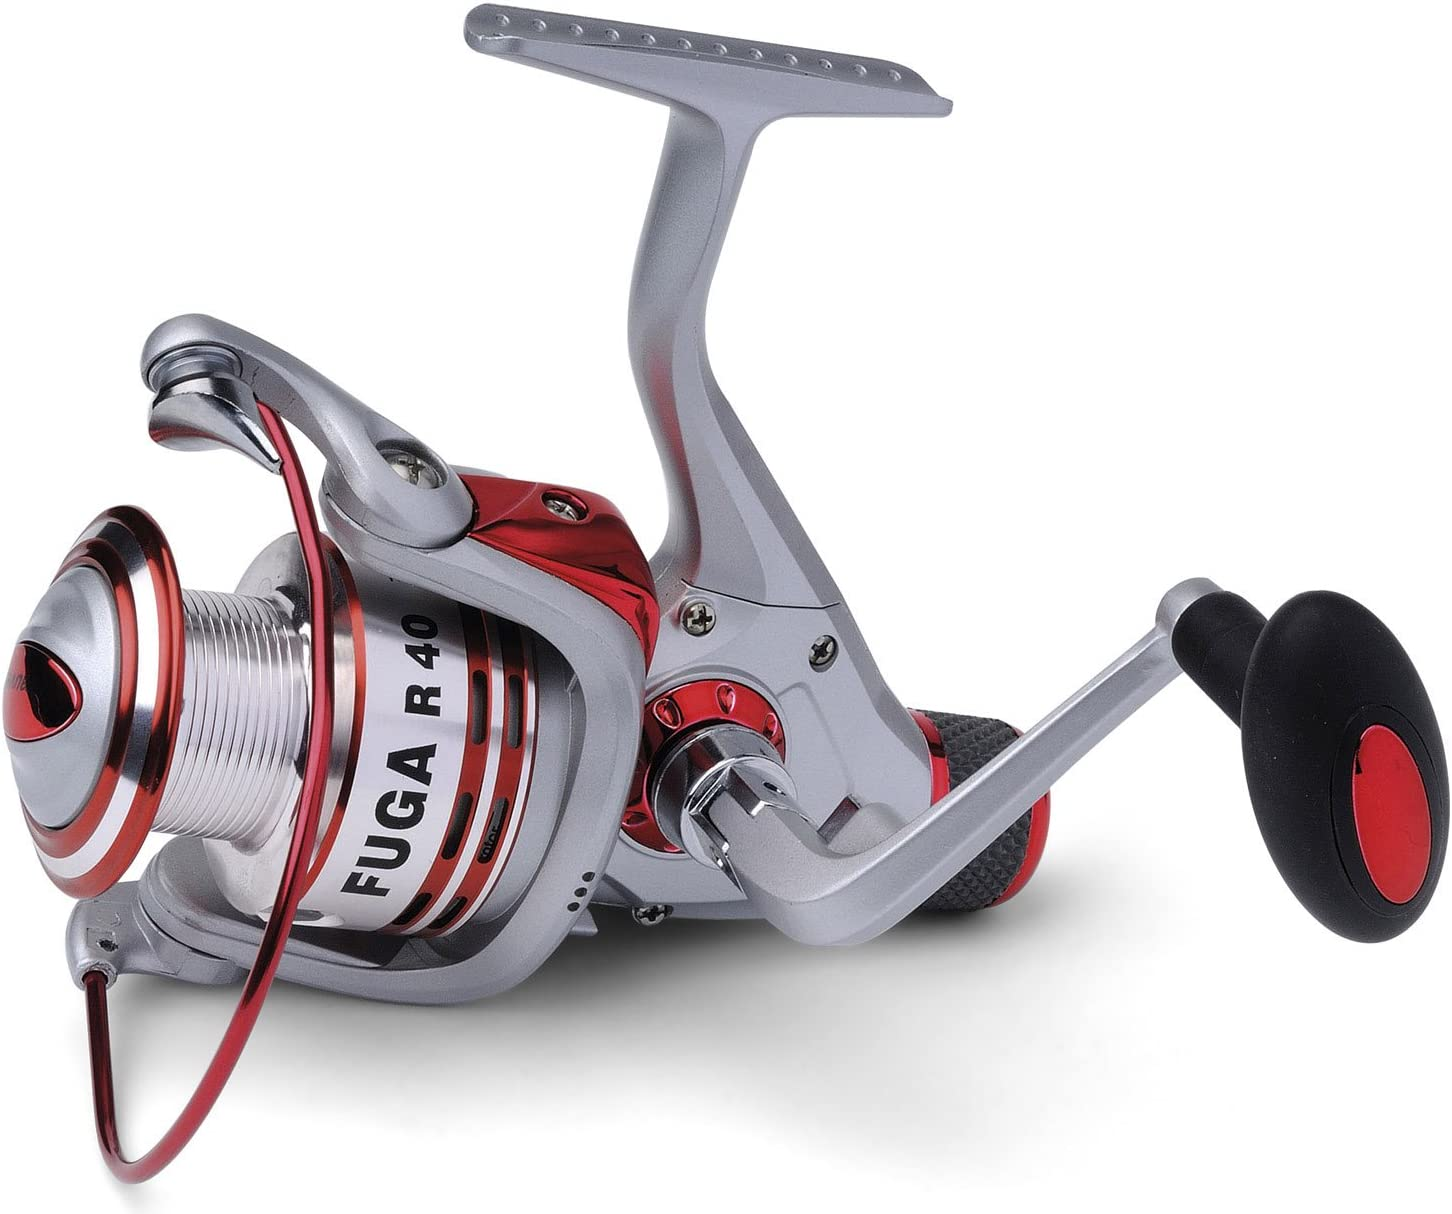 Hilo de FUGA R-Rear Drag-Spinning Match-Fishing Reels Gris claro ...